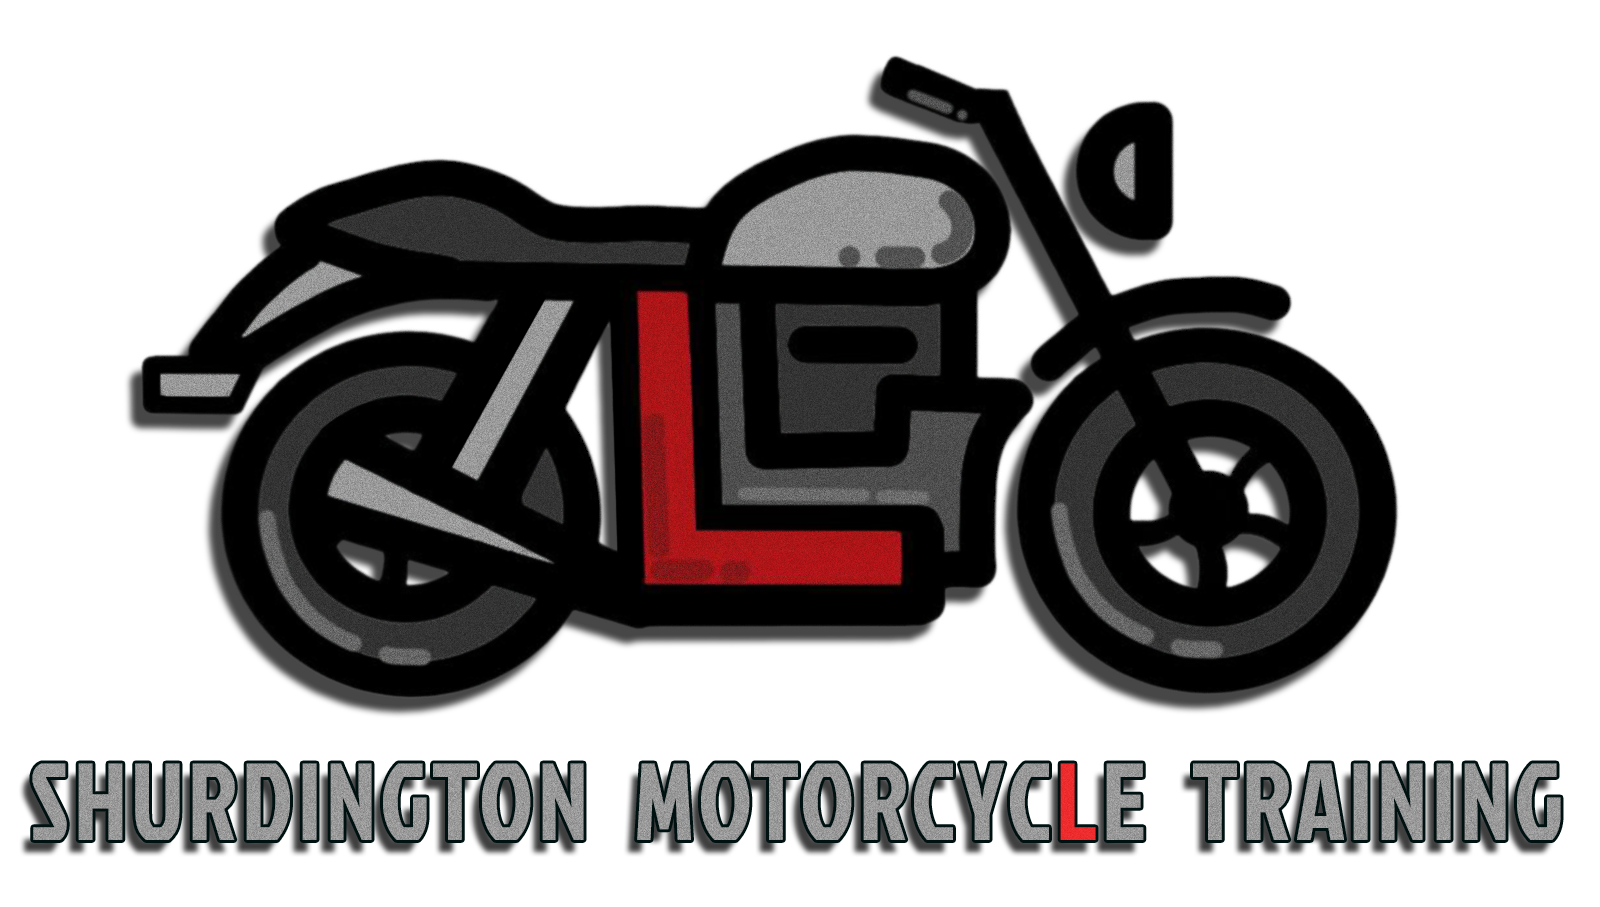 Shurdington Motorcycle Training in Shurdington